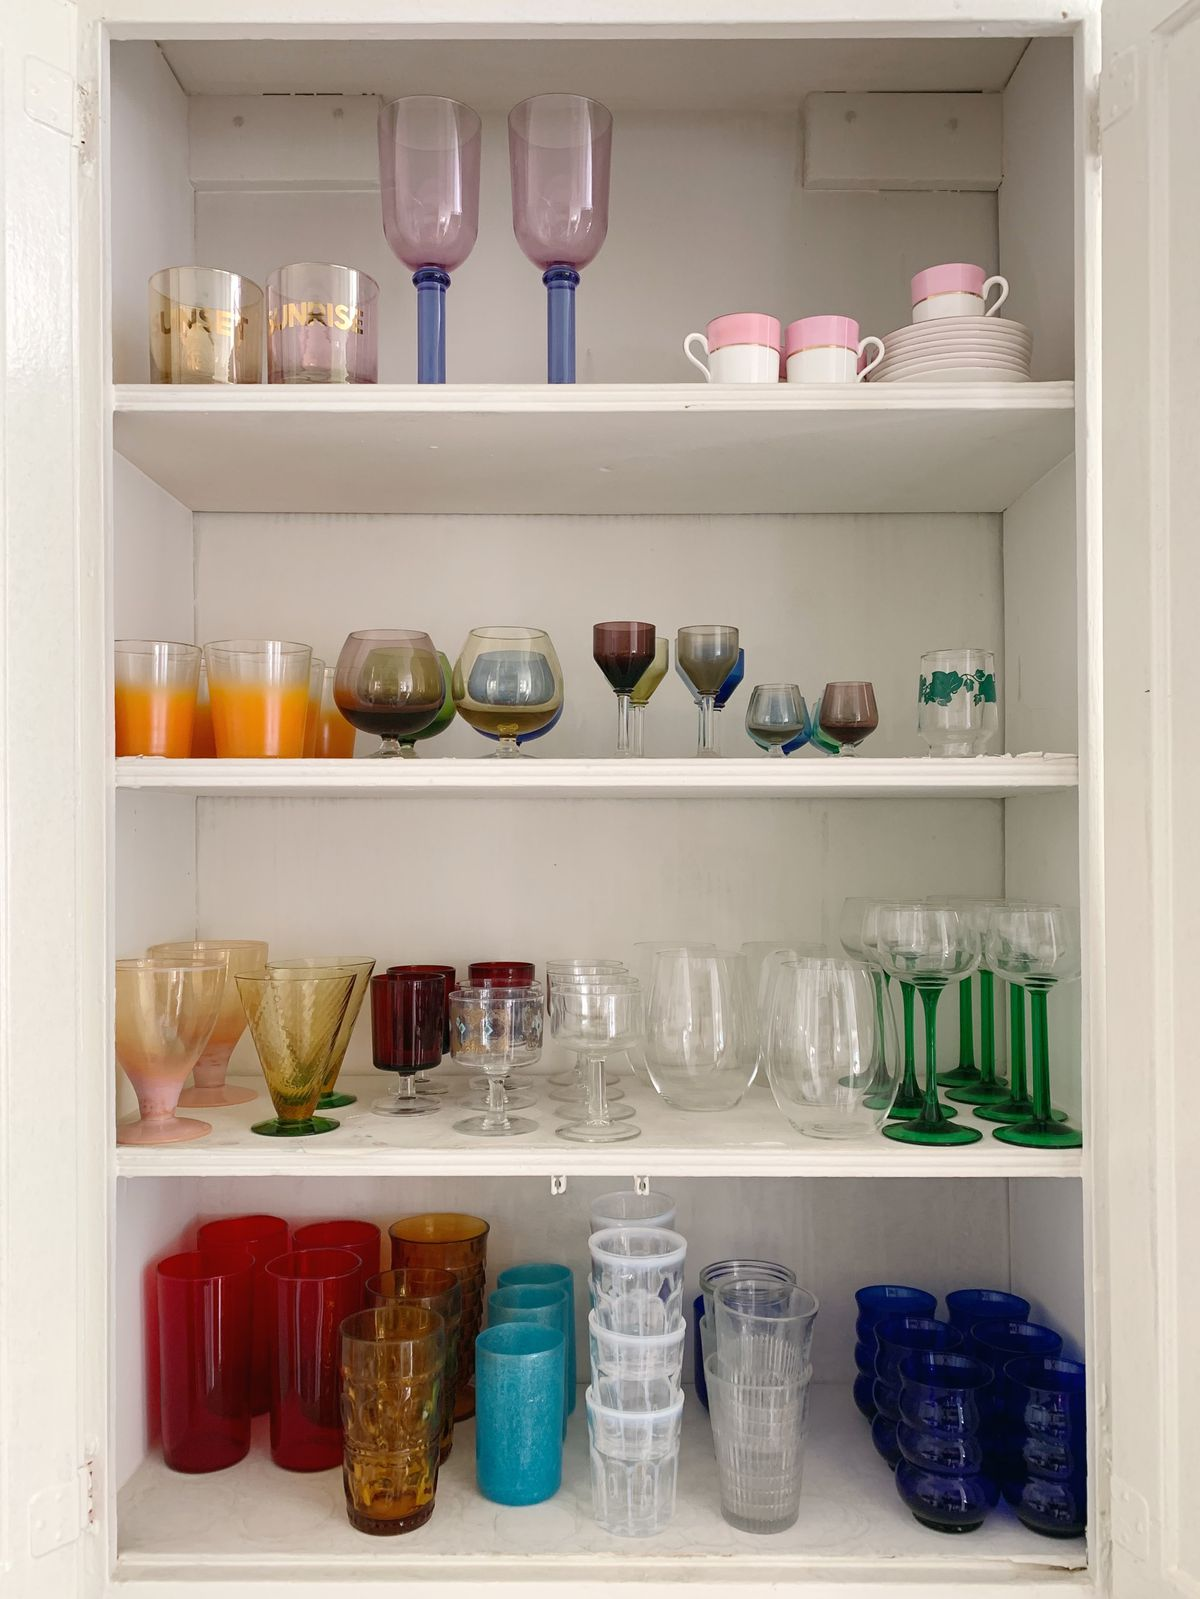 A four-tiered white cabinet holds a collection of colored glass in shades of purple, orange, yellow, green, red, blue, and white.